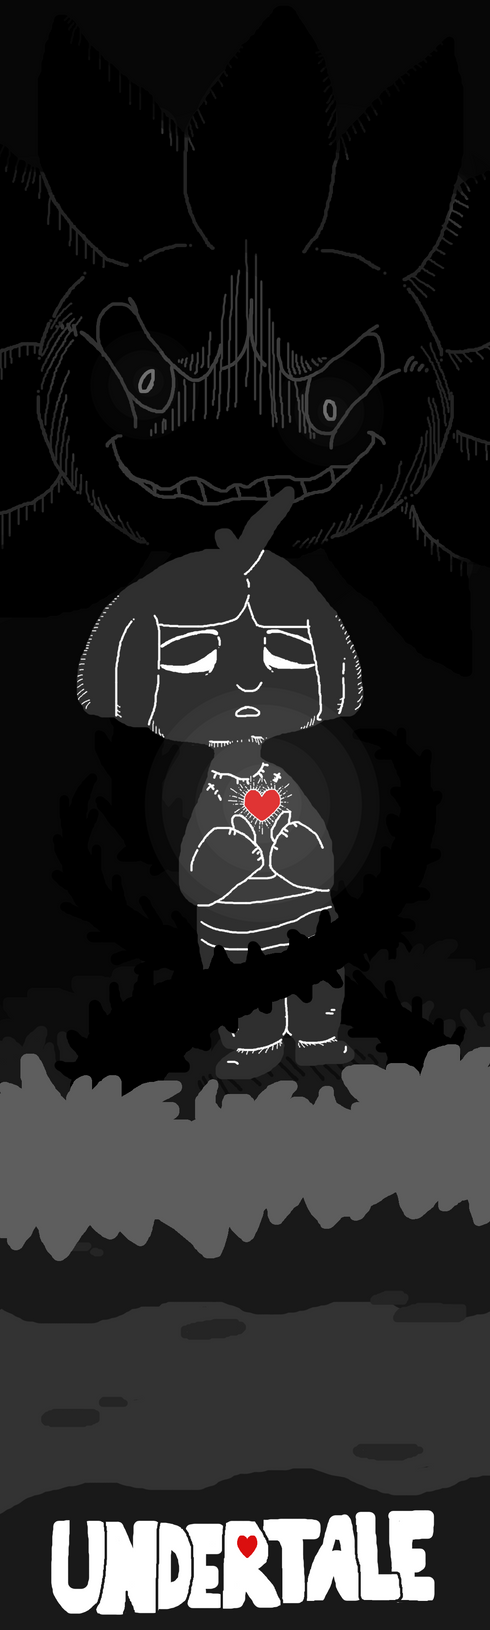 Undertale: The Feels Game by anime4always